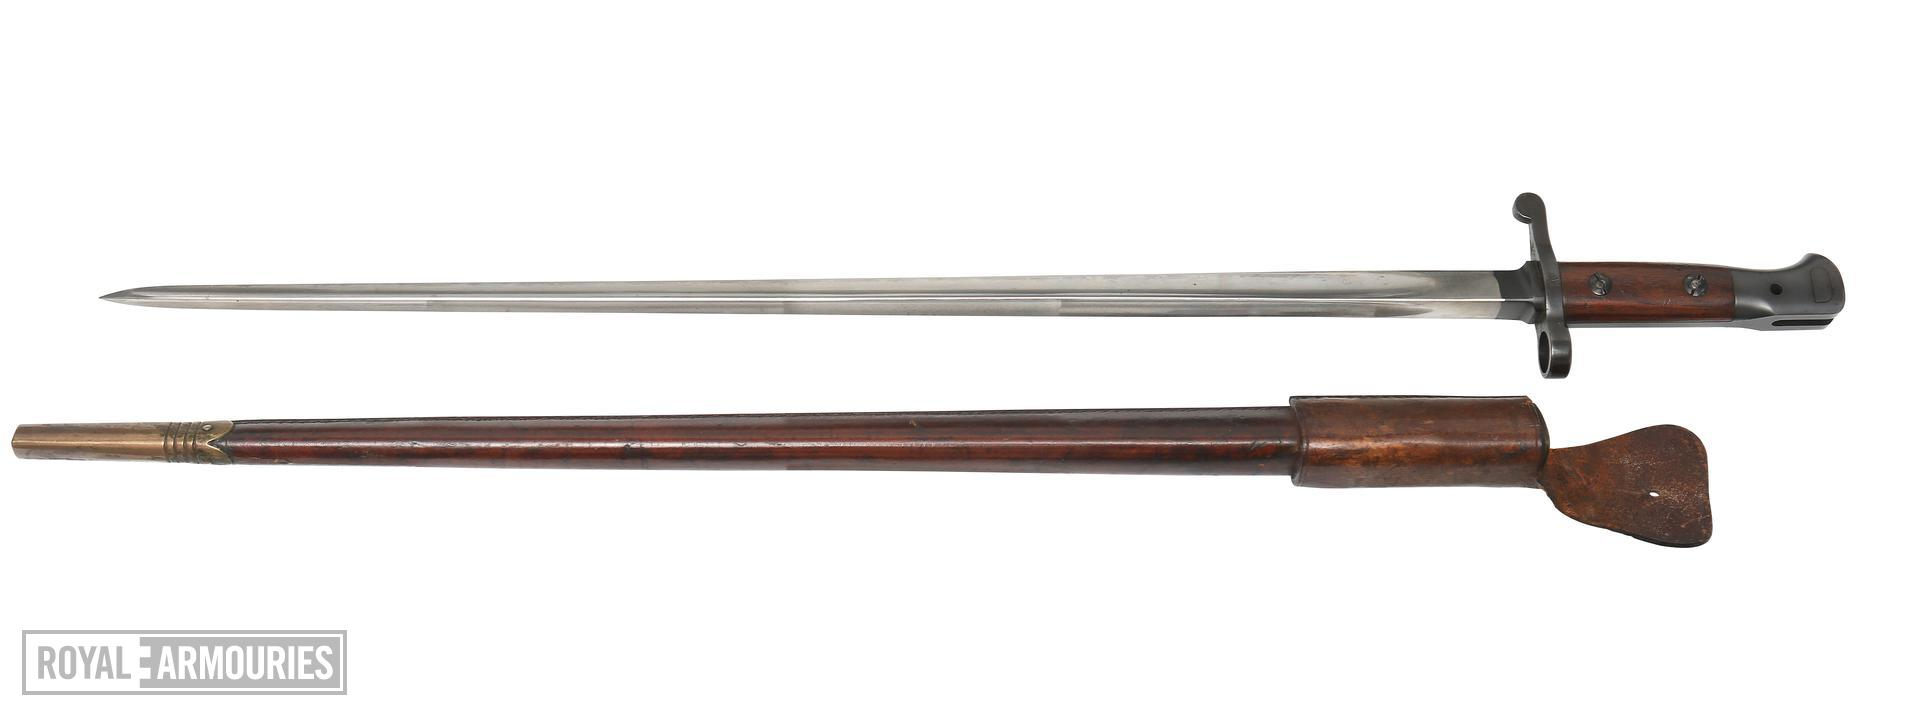 PR.1961 Bayonet and scabbard For experimental SMLE Lockyer Pattern